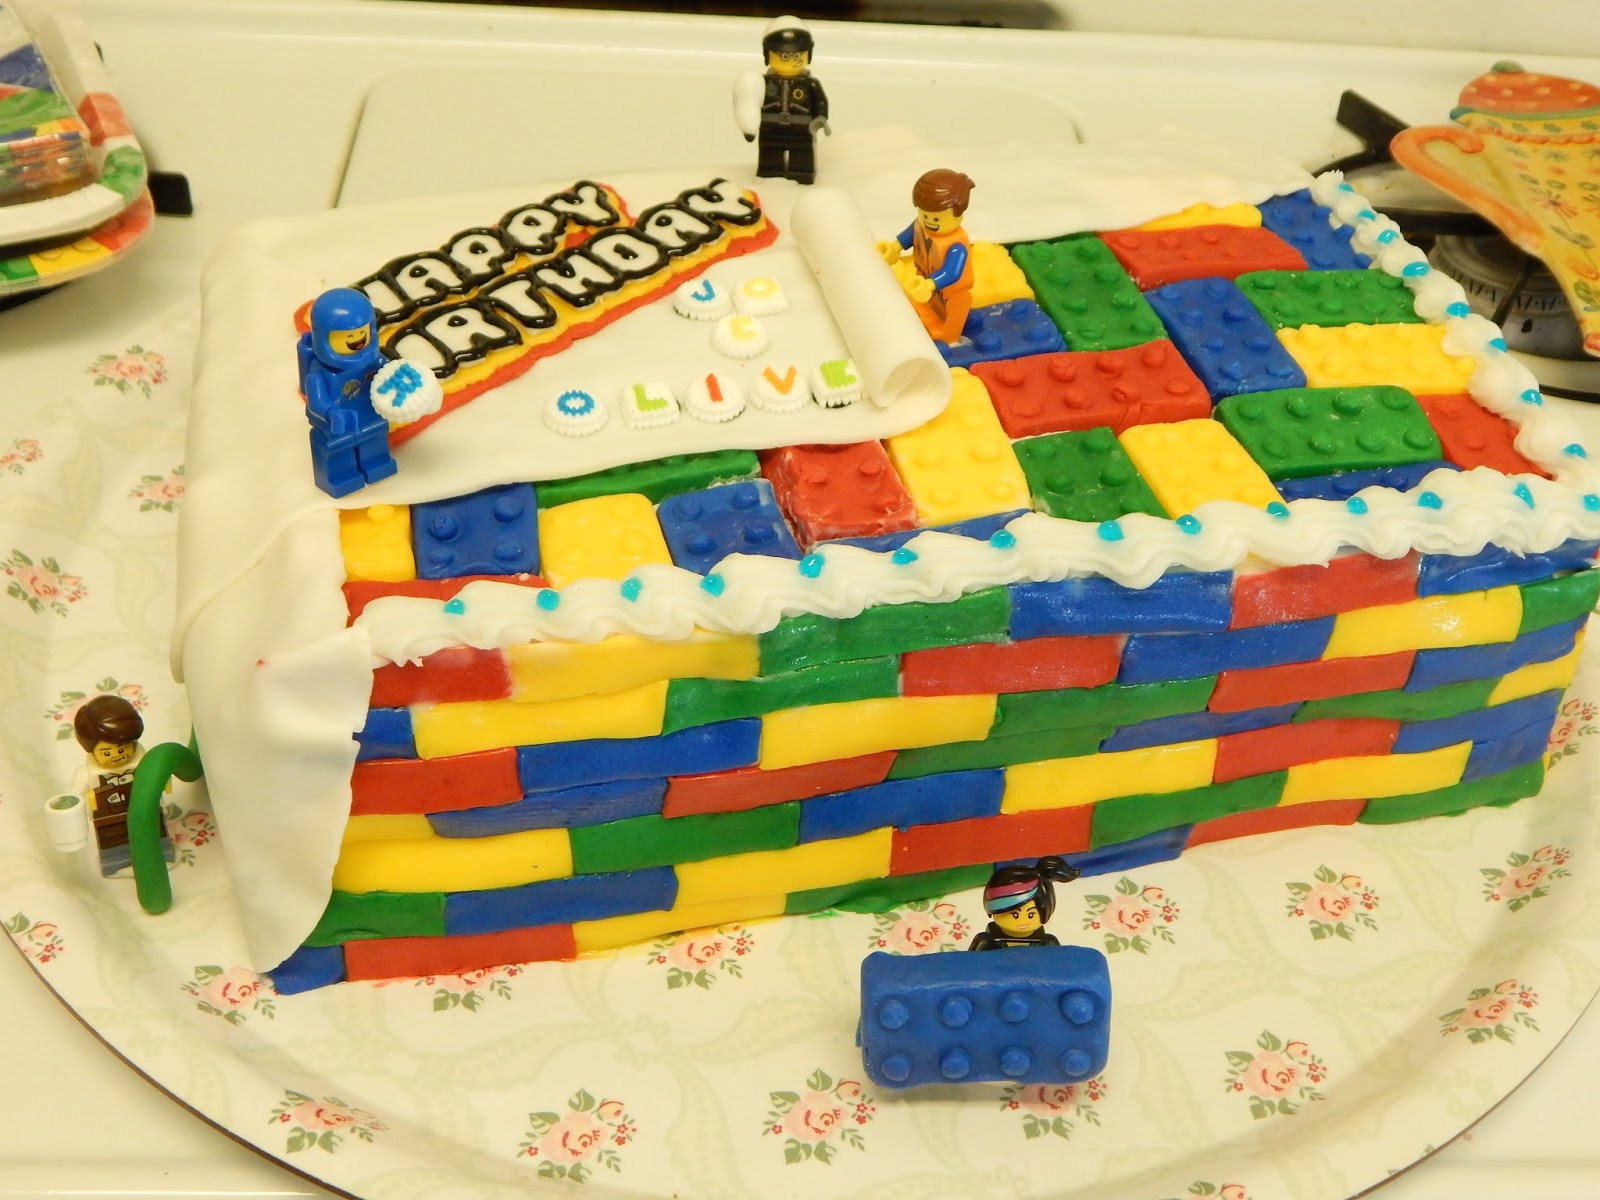 I M Going To Make It After All Lego Birthday Cake